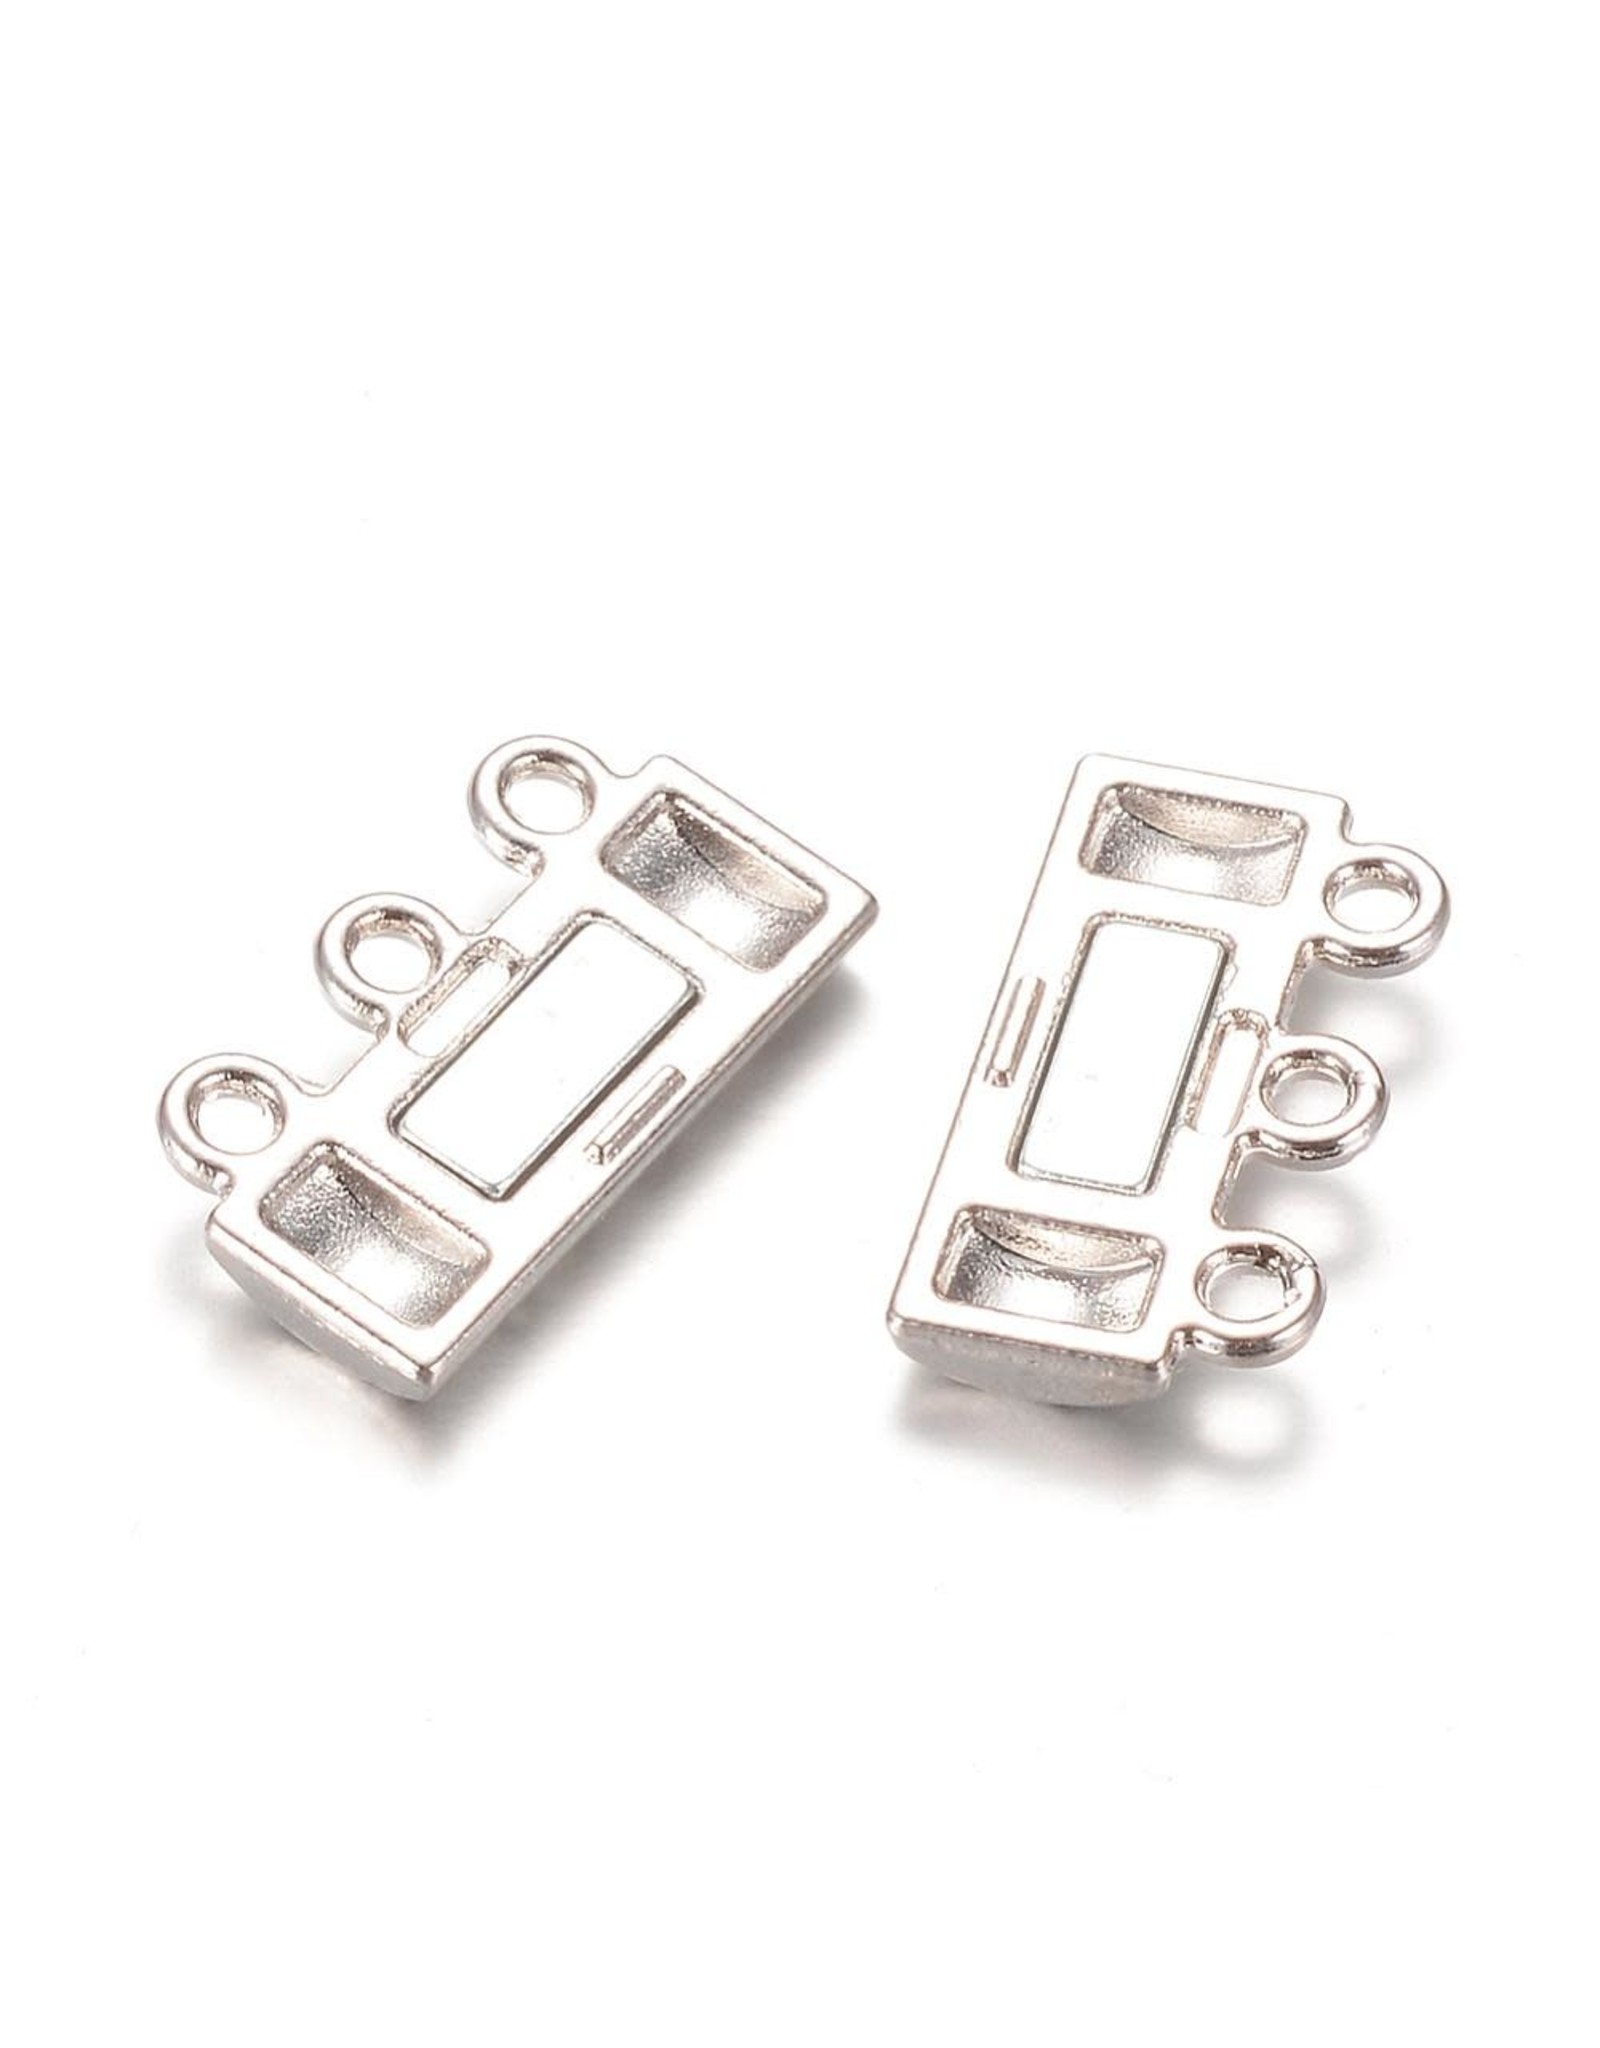 Magnetic Clasp  14x19mm 3 to 3 Loops Platinum   x1